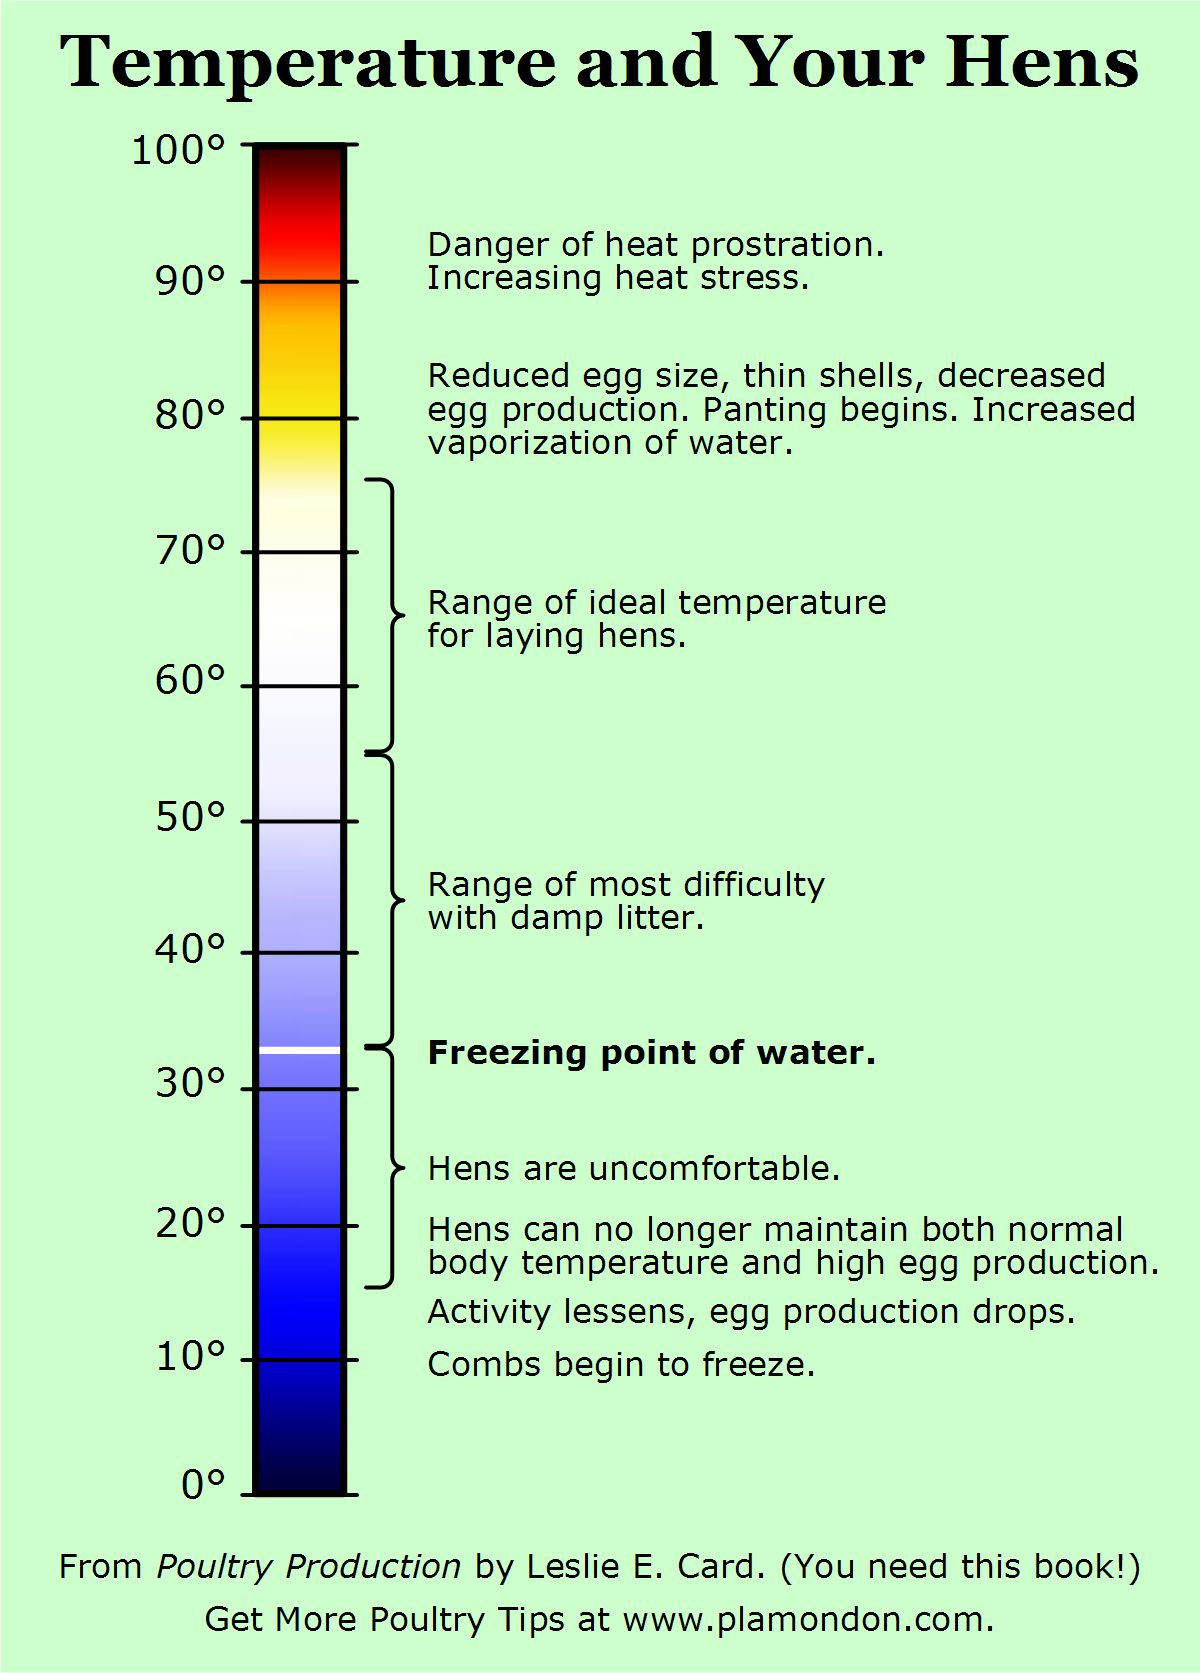 Temperature and Your Hens, from Poultry Production by Leslie E Card, published by Norton Creek Press.